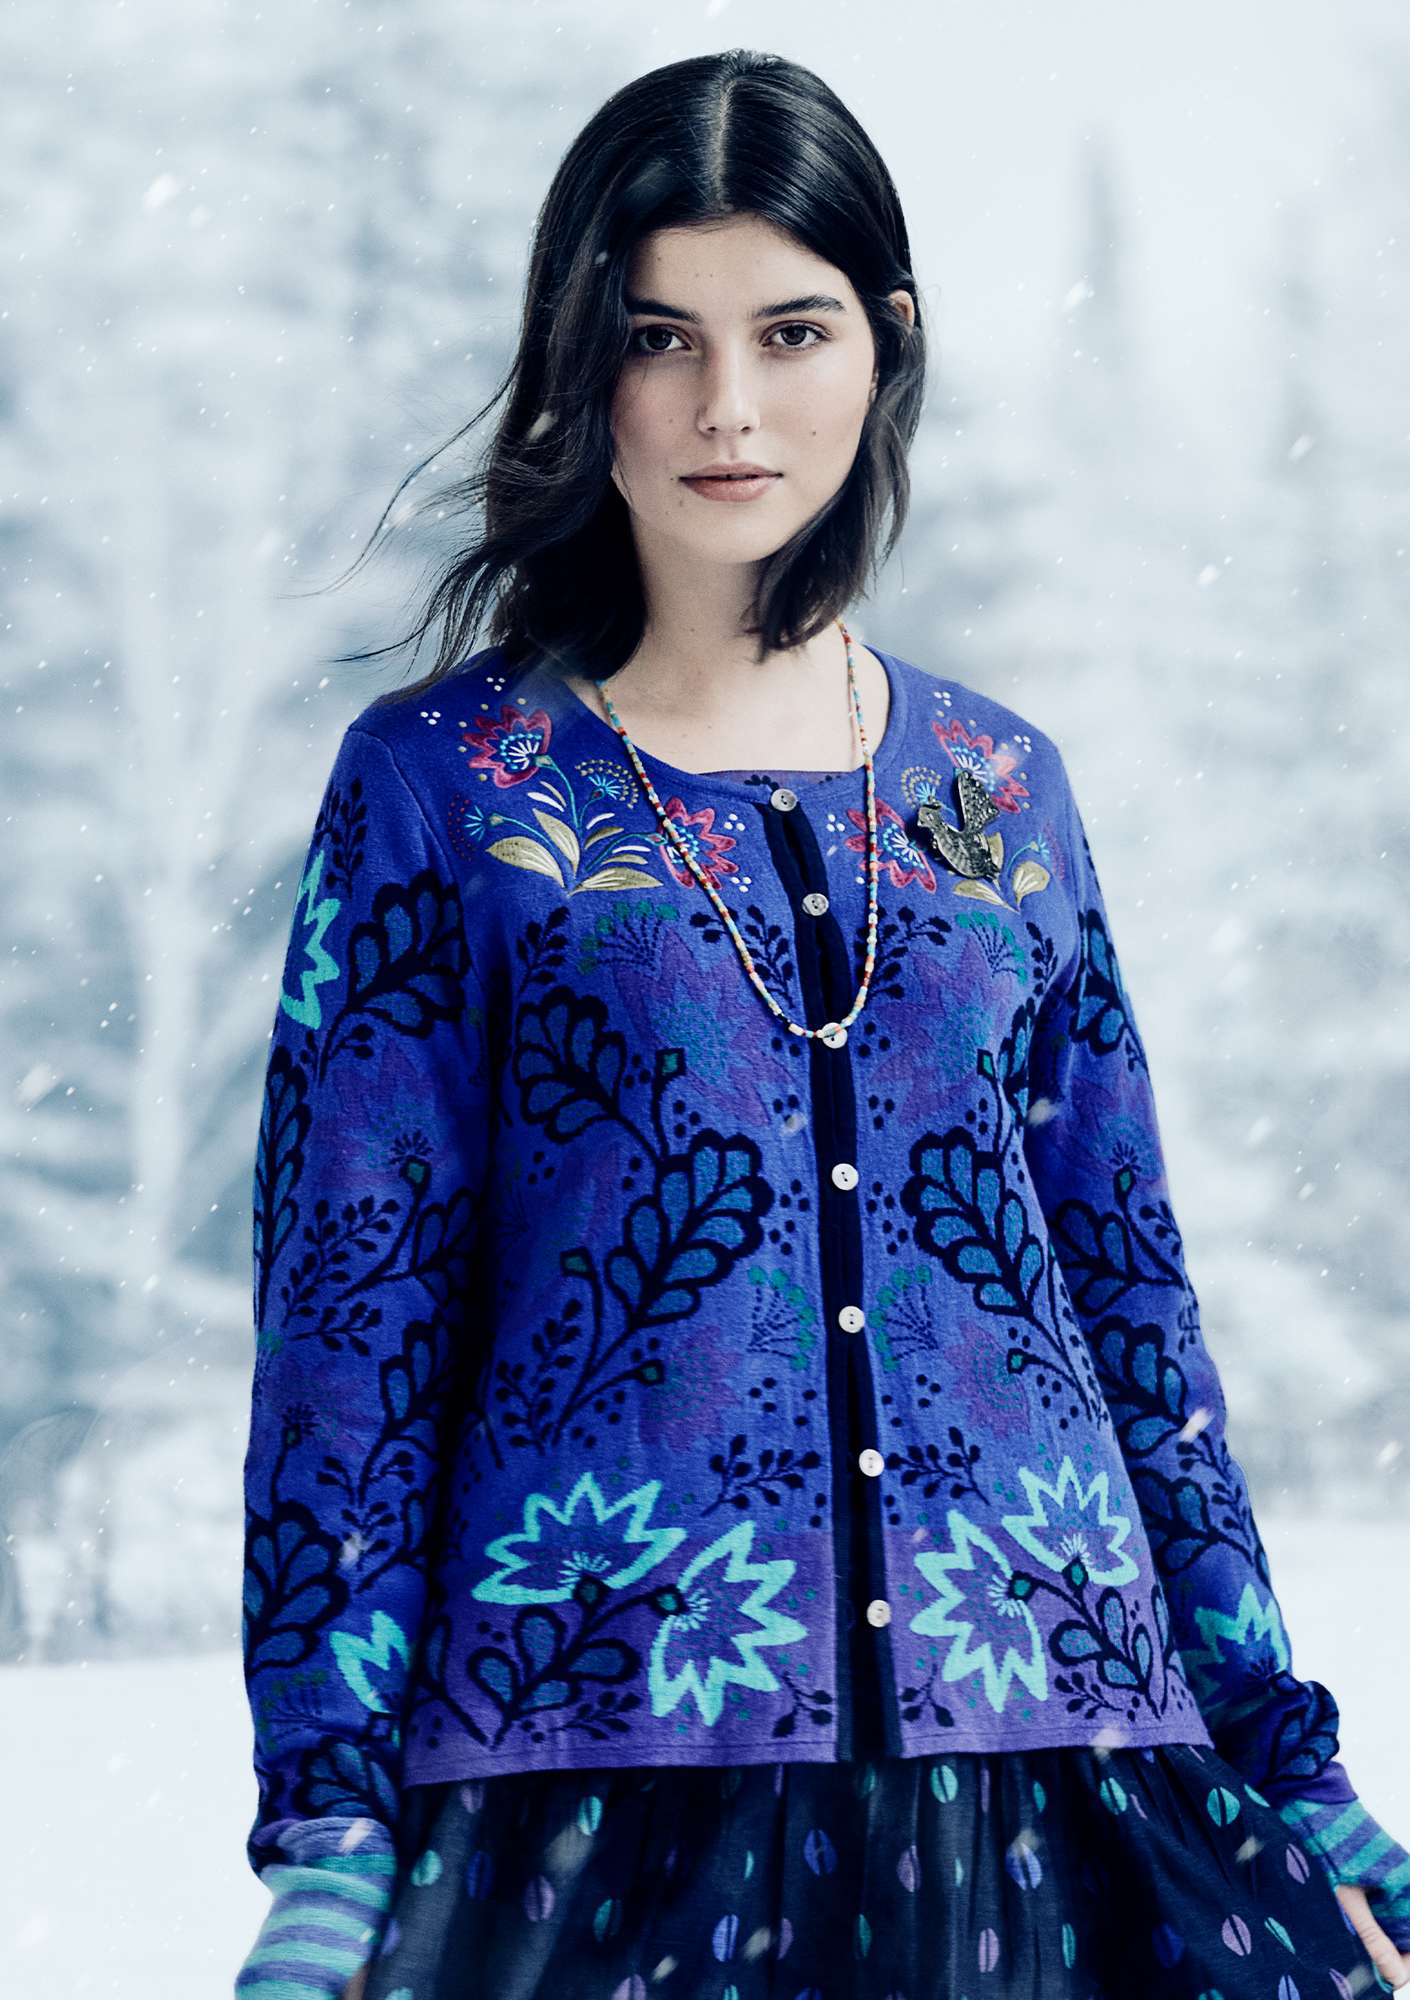 Kranskulla embroidered cardigan cobalt blue